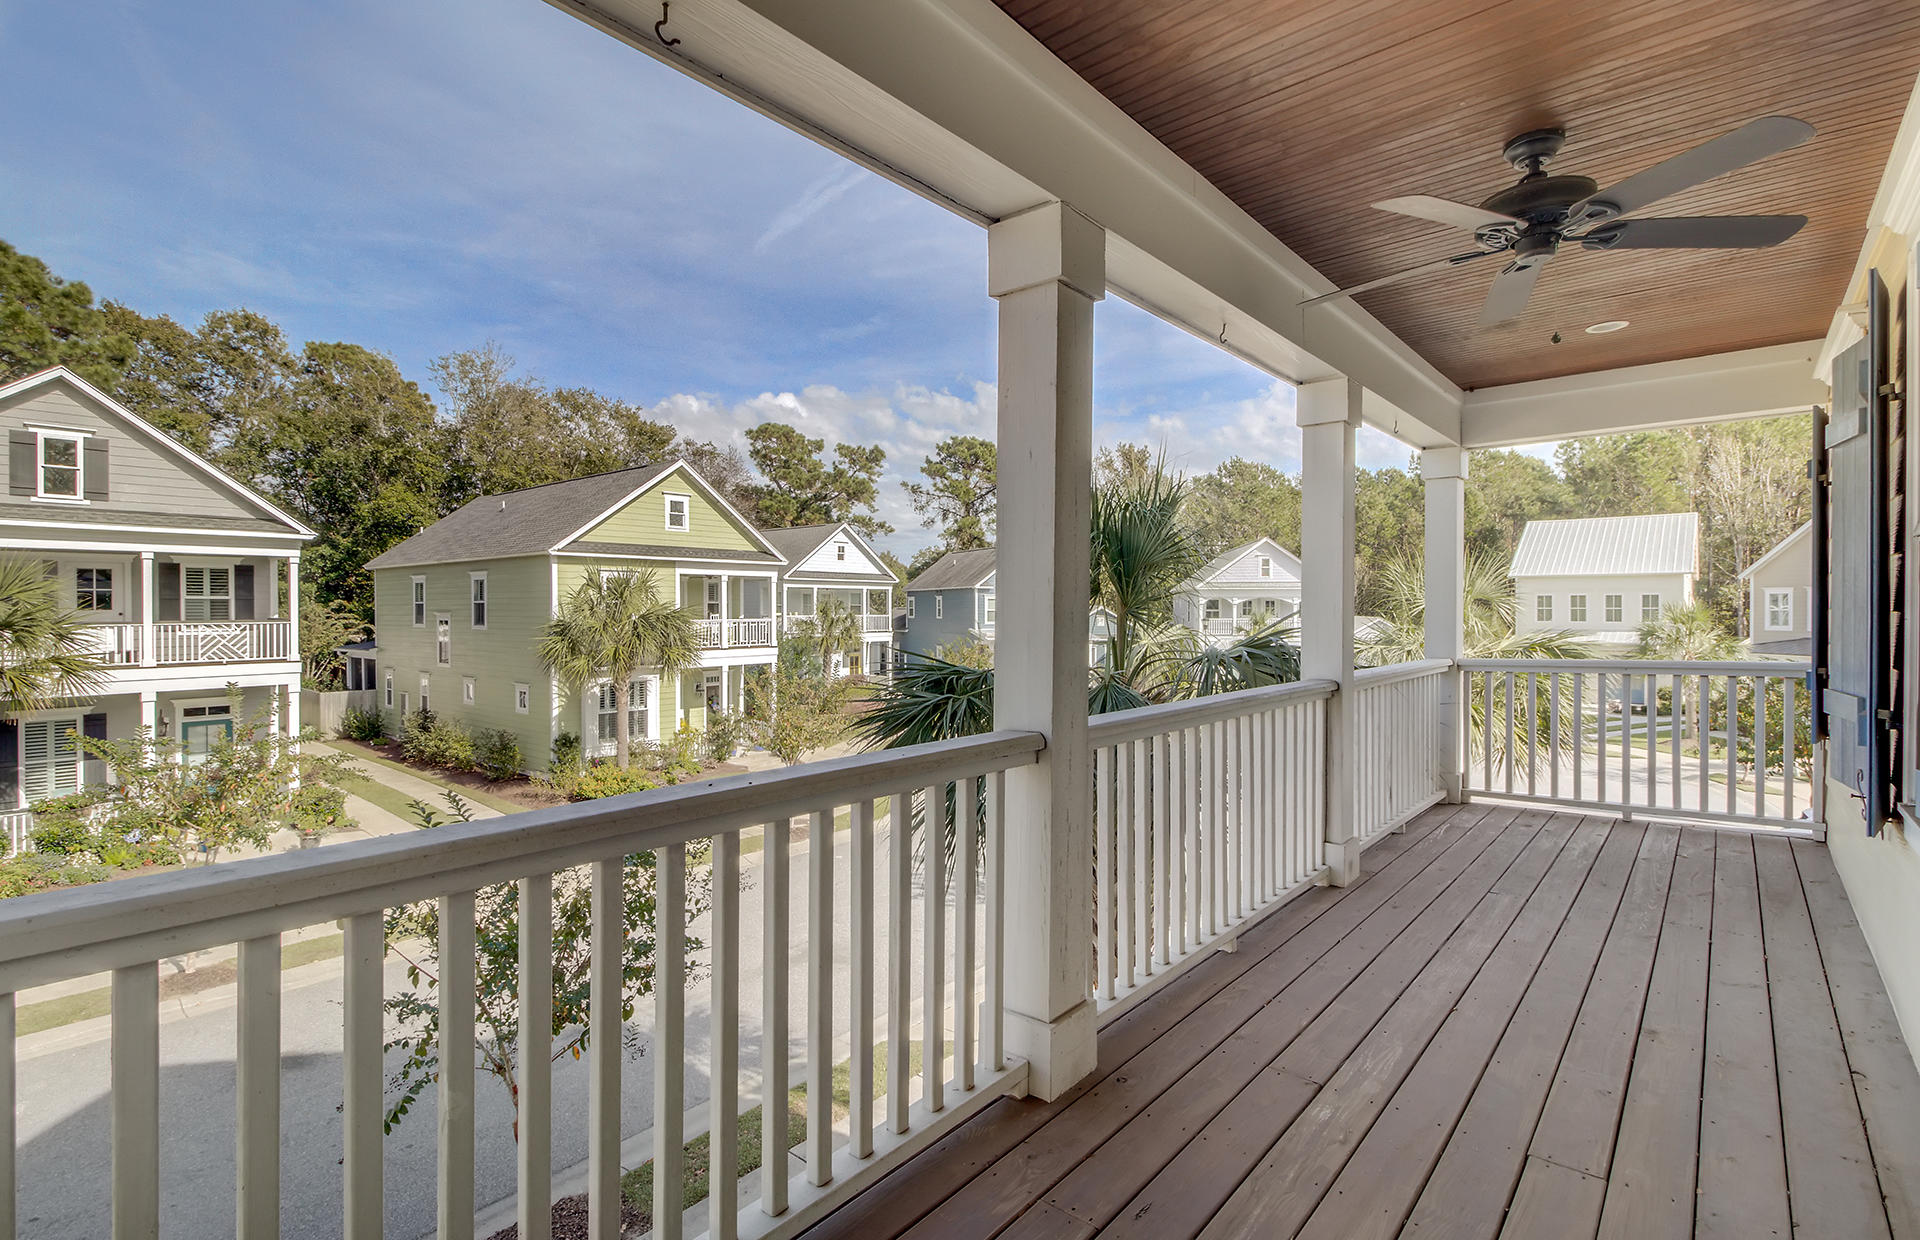 Wexford Park Homes For Sale - 1141 Wexford, Mount Pleasant, SC - 33